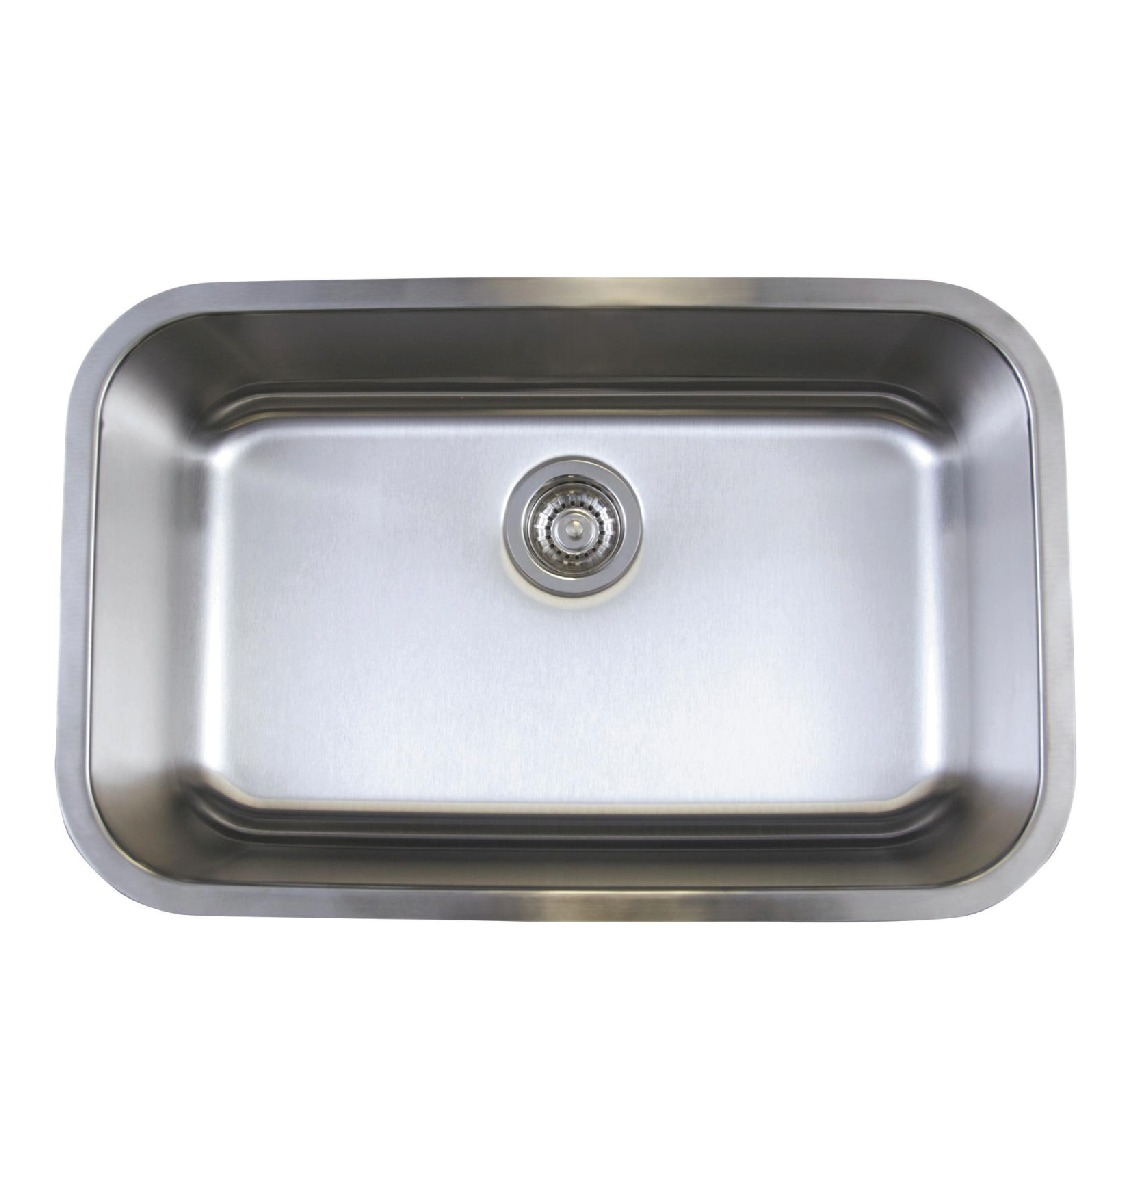 Undermount Stainless Steel Sink Single Bowl : Blanco 441024 Stellar Super Single Bowl, Stainless Steel - Schilling